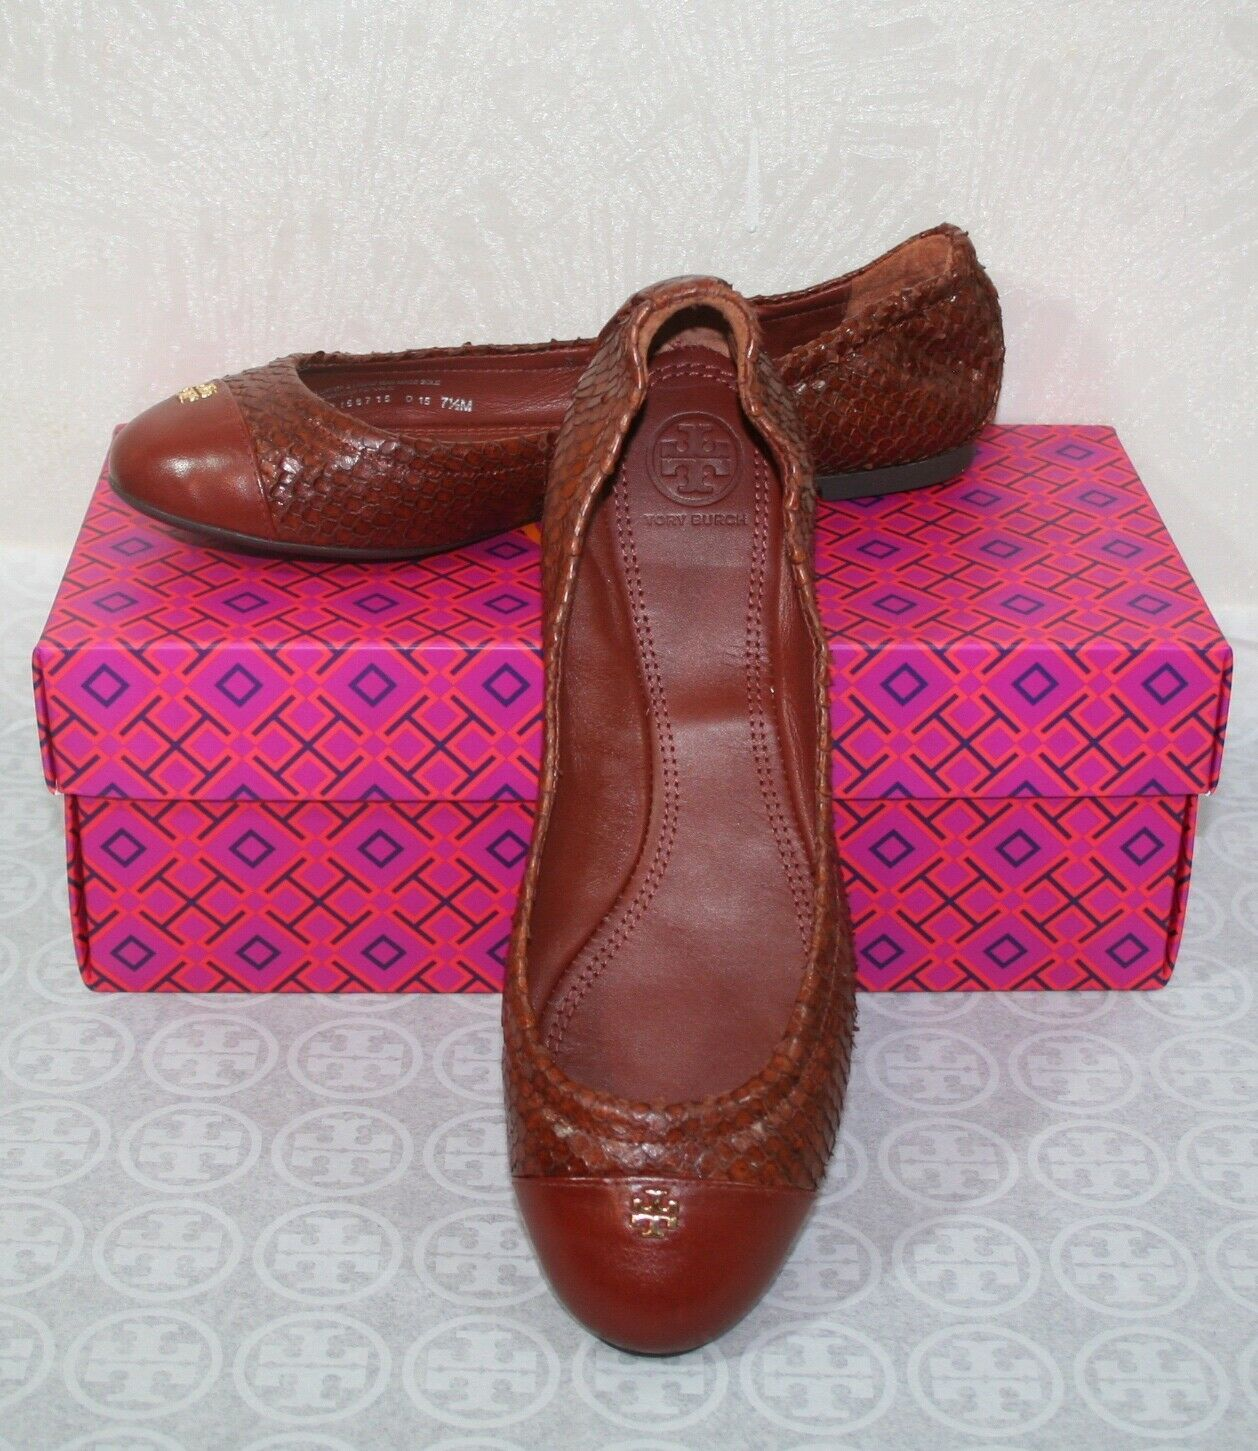 Tory Burch York Ballet-Glossy Snake Print Size 8 Brown/Cherry Almond Flats $225